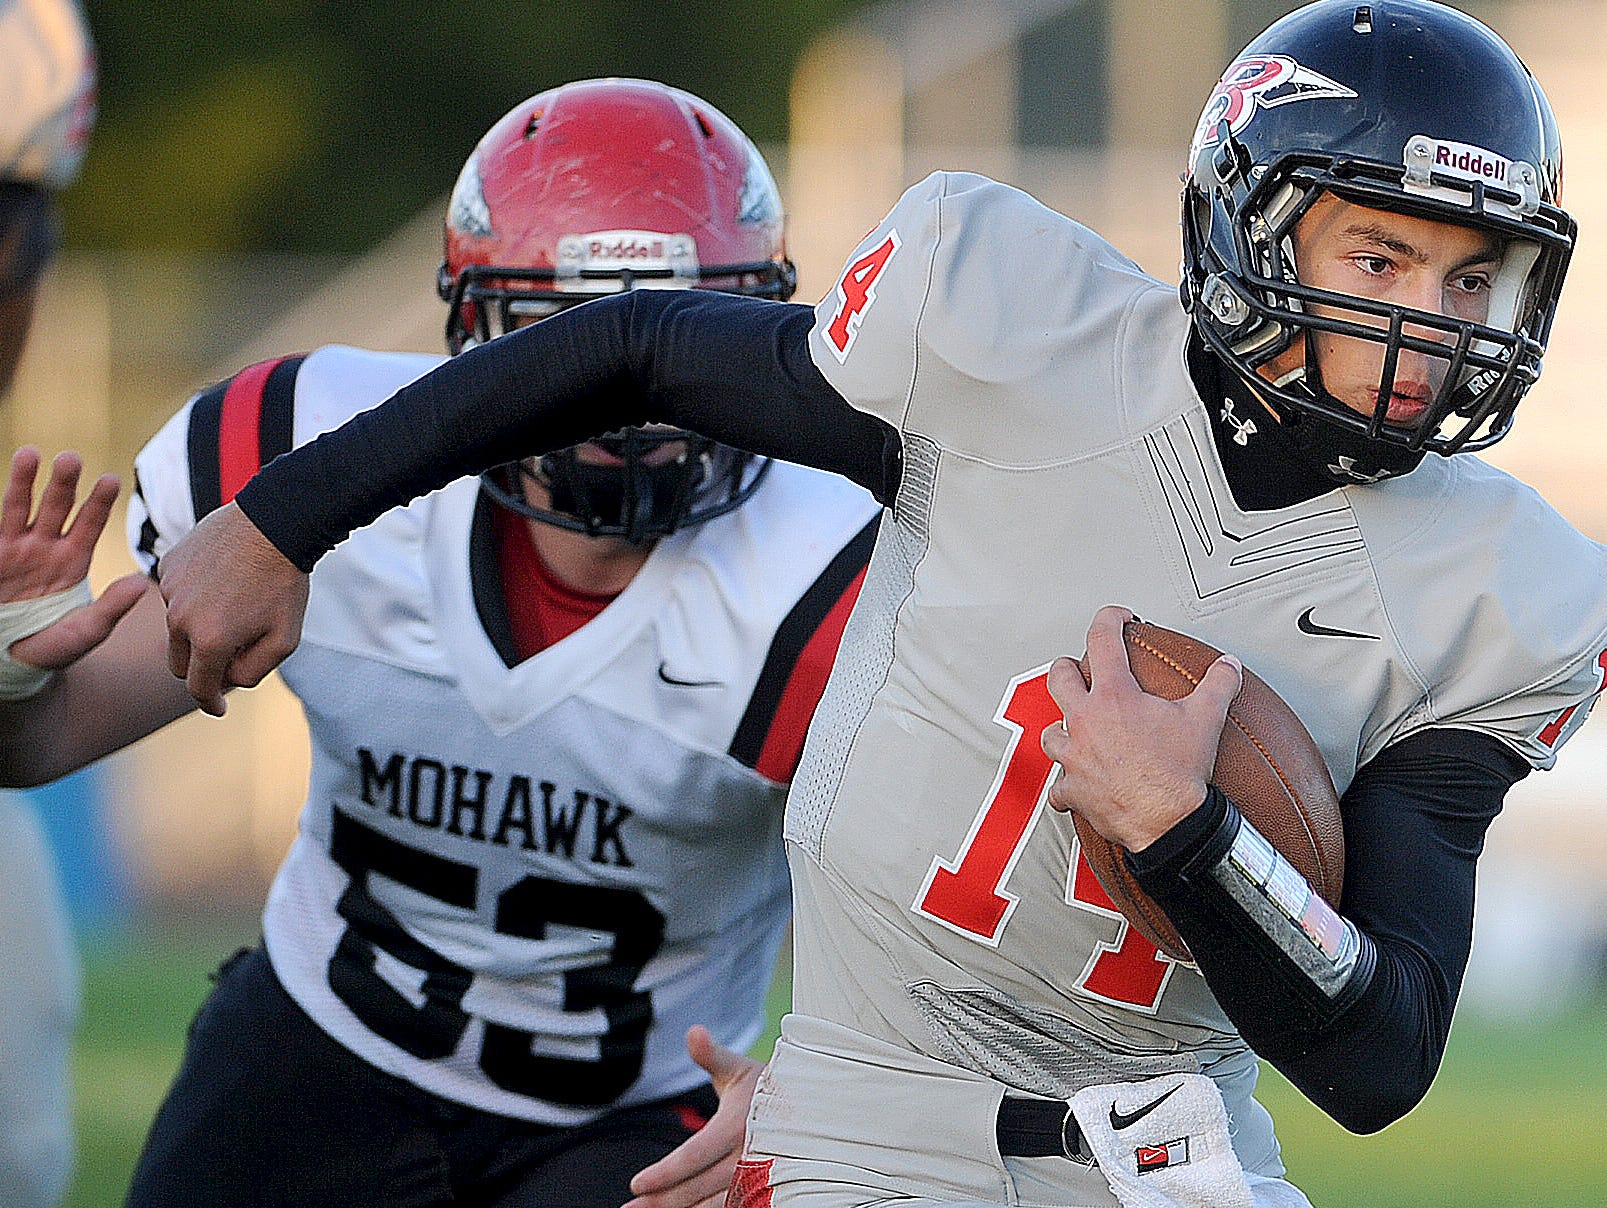 Bucyrus quarterback Cole Murtiff finds room to run against Mohawk last season. Murtiff will play for the North all-stars after rewriting his school's passing records.